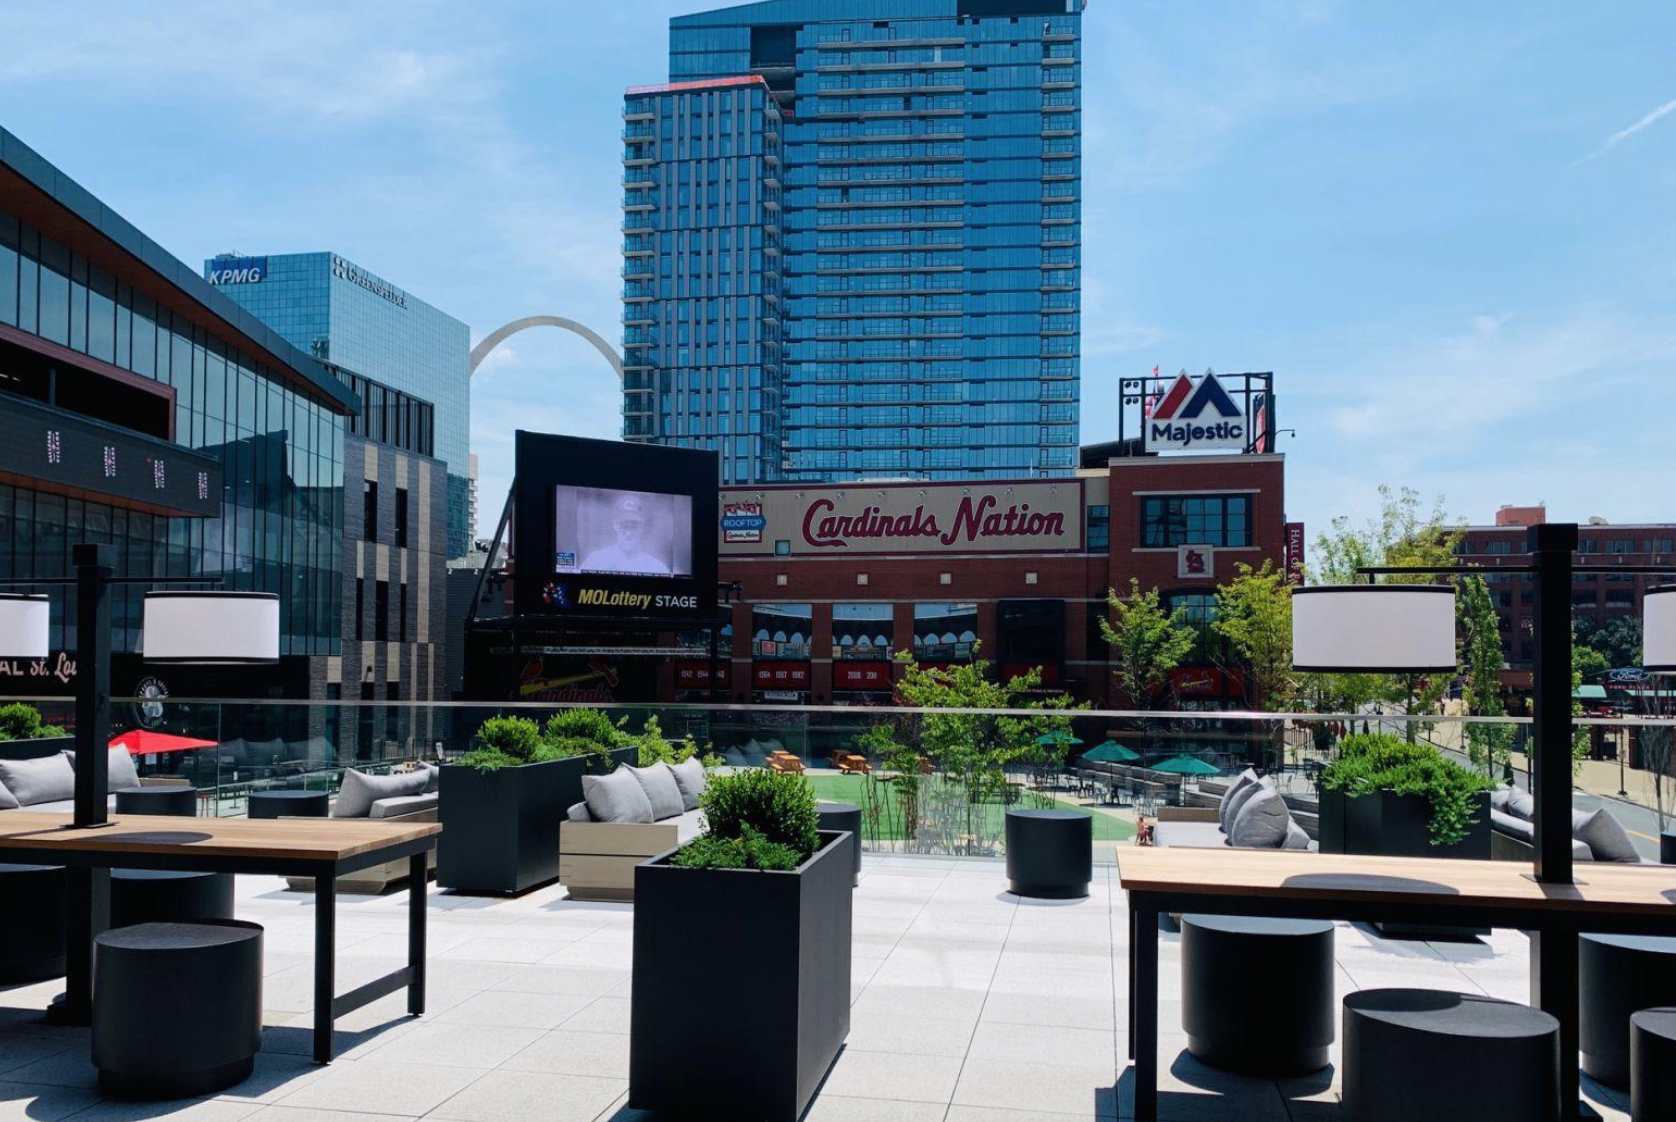 Sports & Social, the Bullock bring more outdoor entertainment options to Ballpark Village